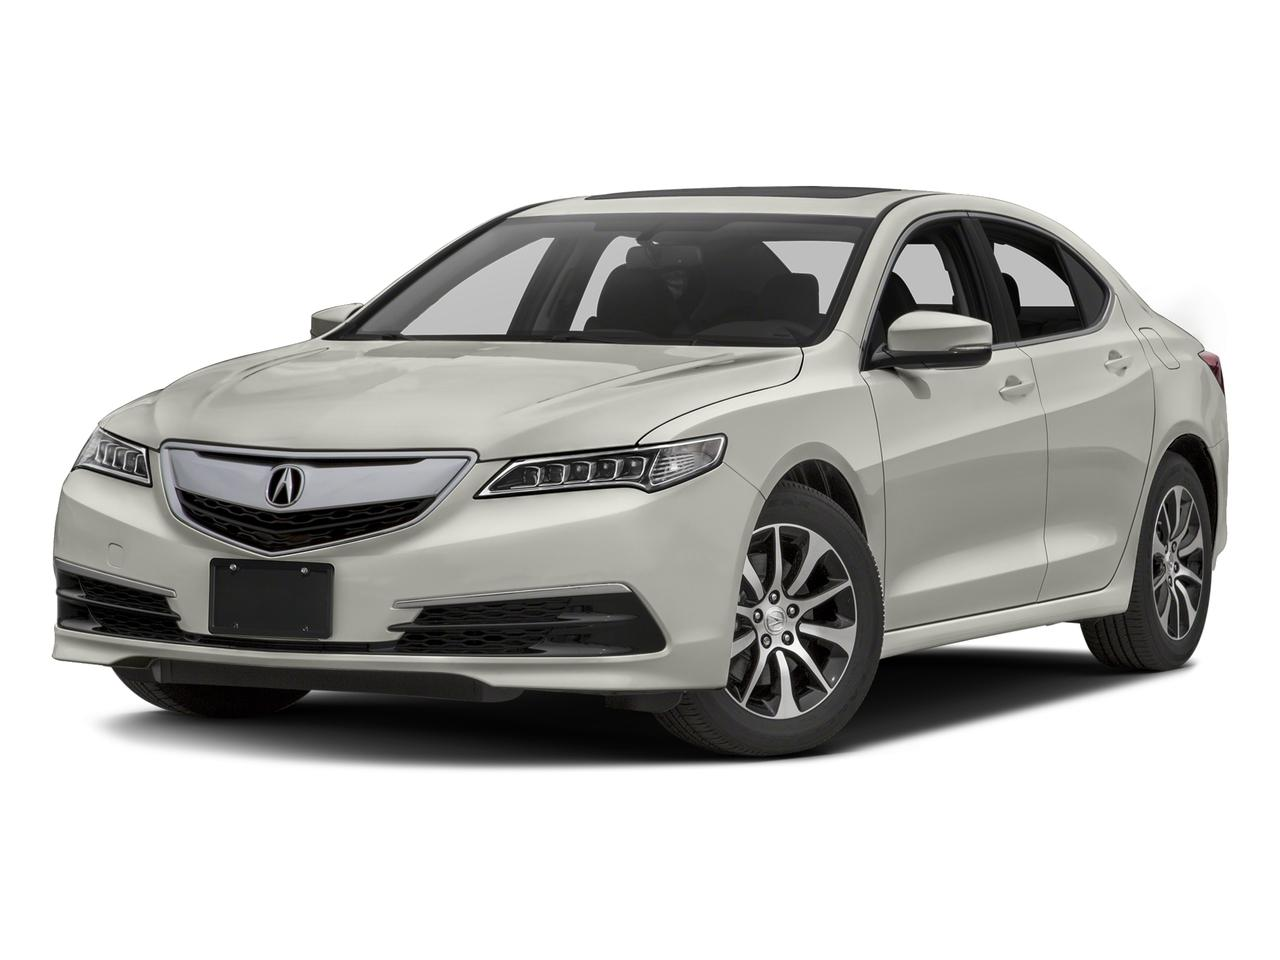 2016 Acura TLX Vehicle Photo in Rock Hill, SC 29731